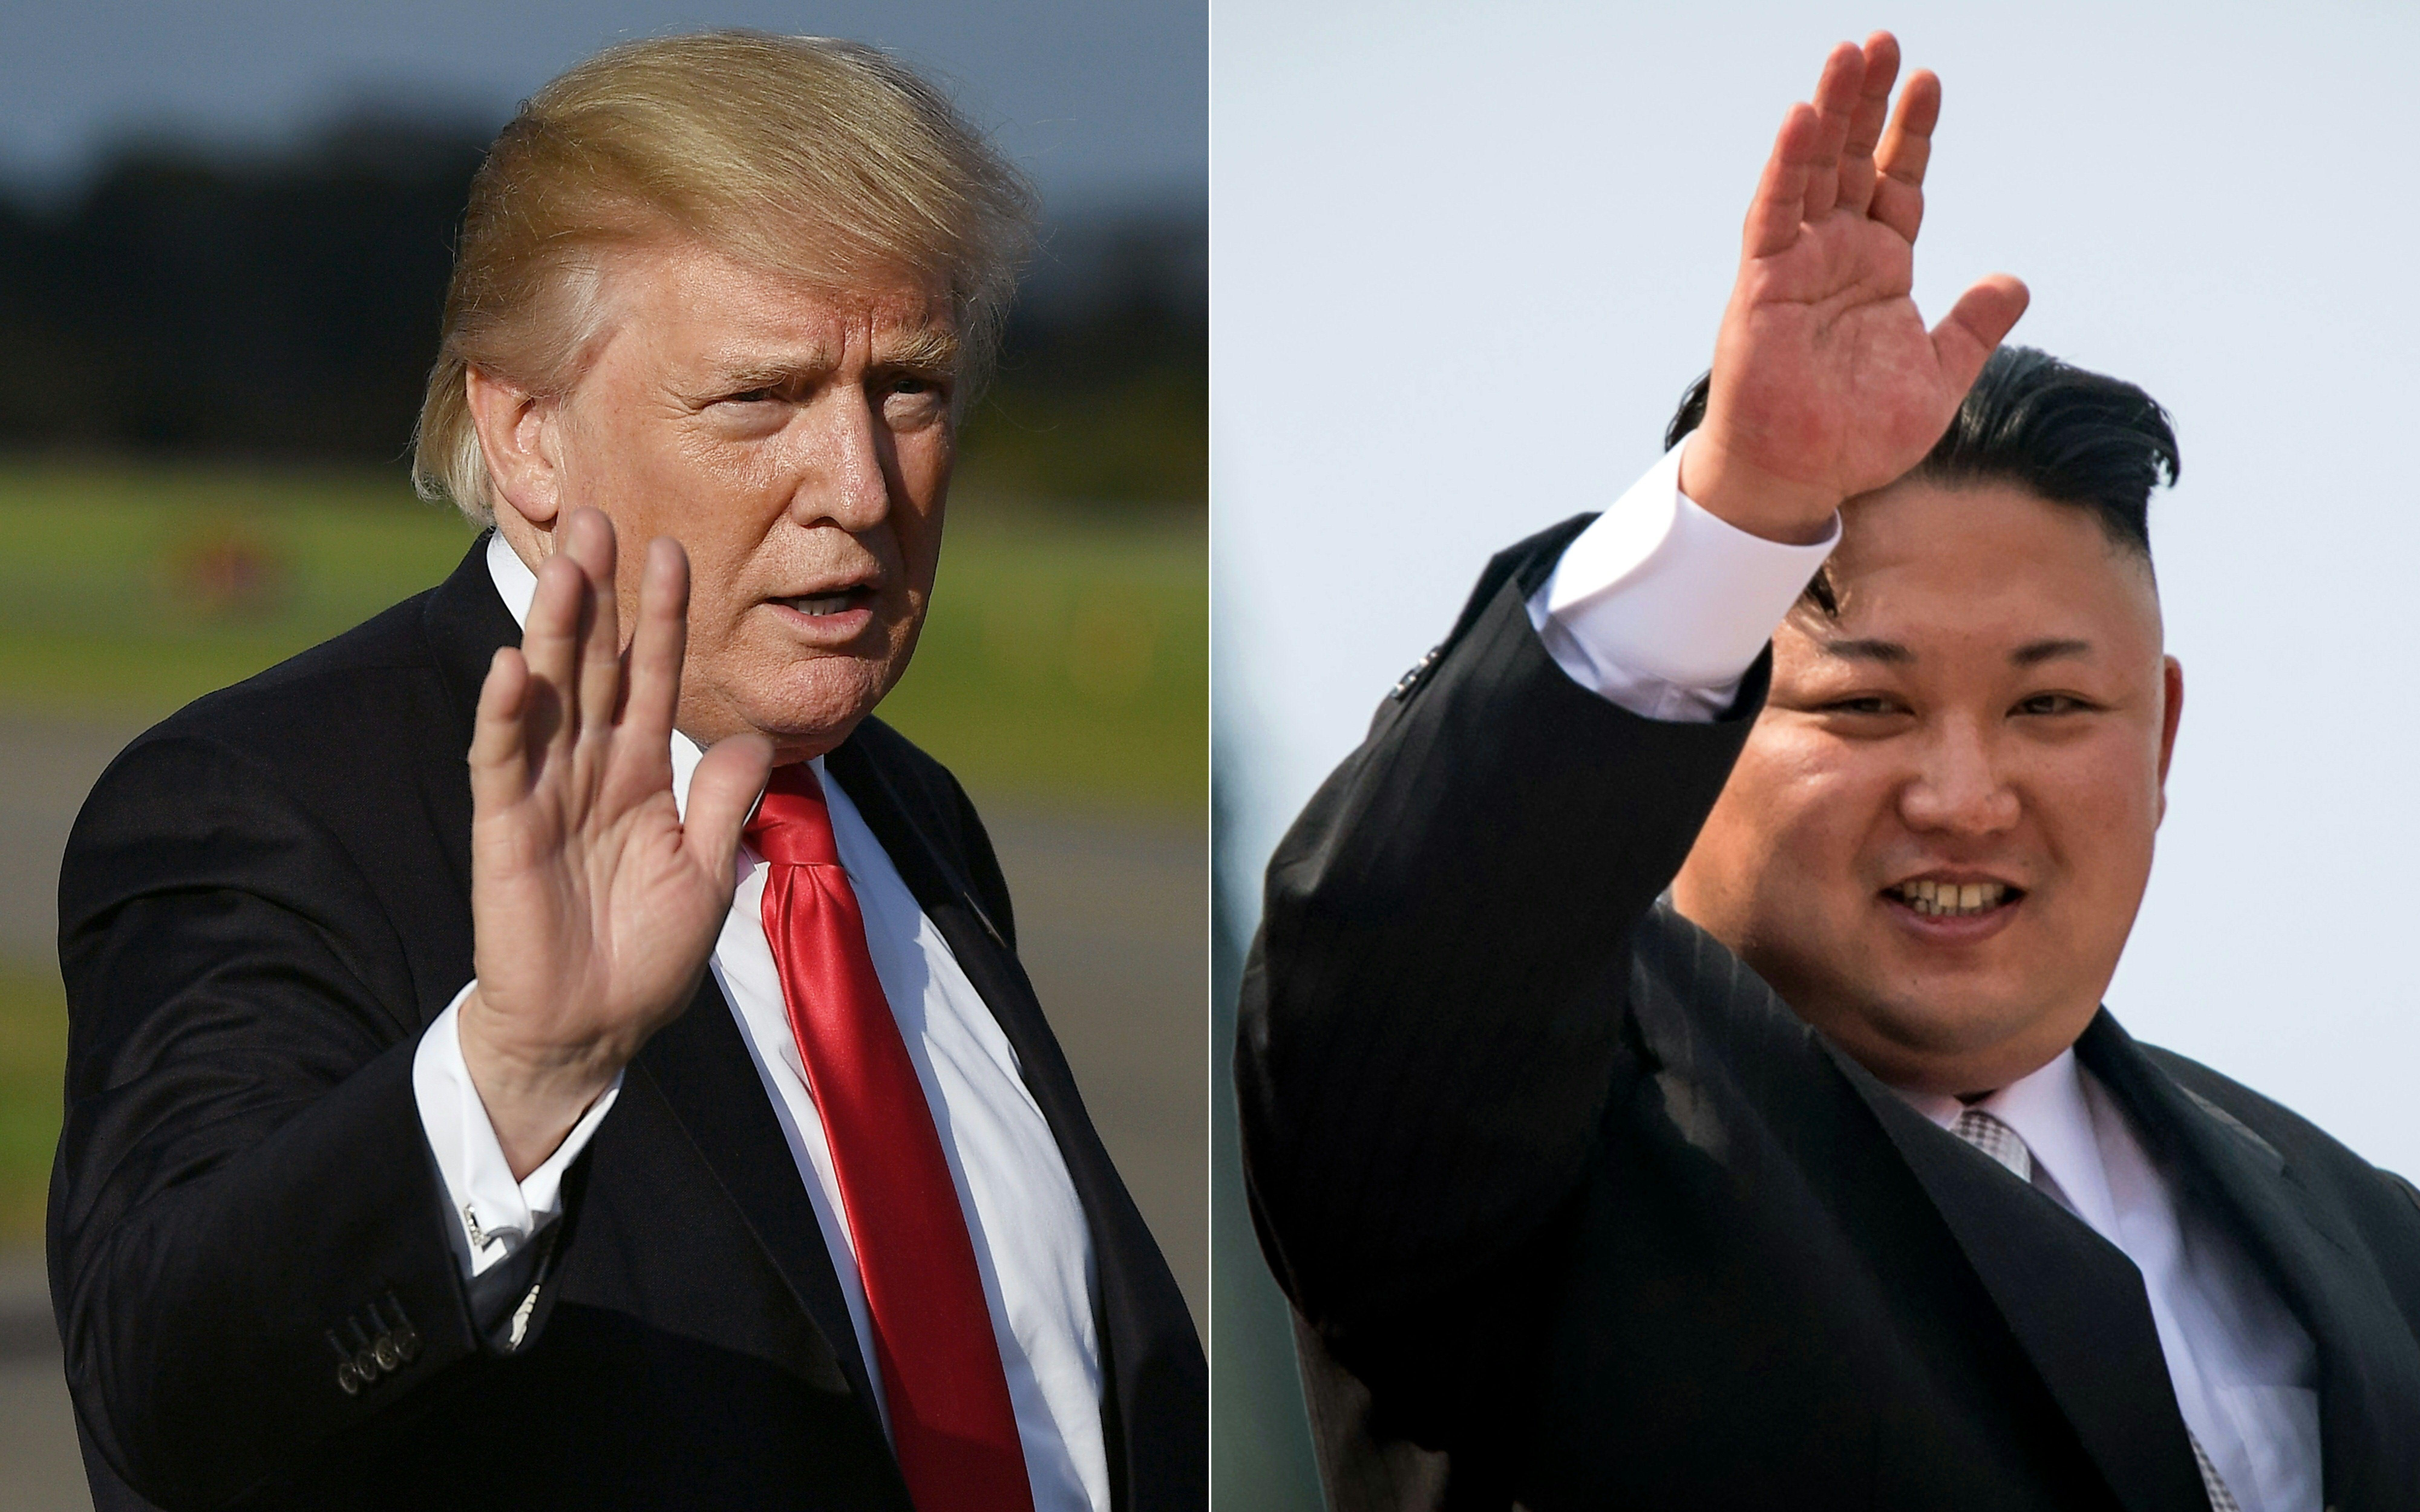 As Olympics approach, Trump tries to pressure North Korea